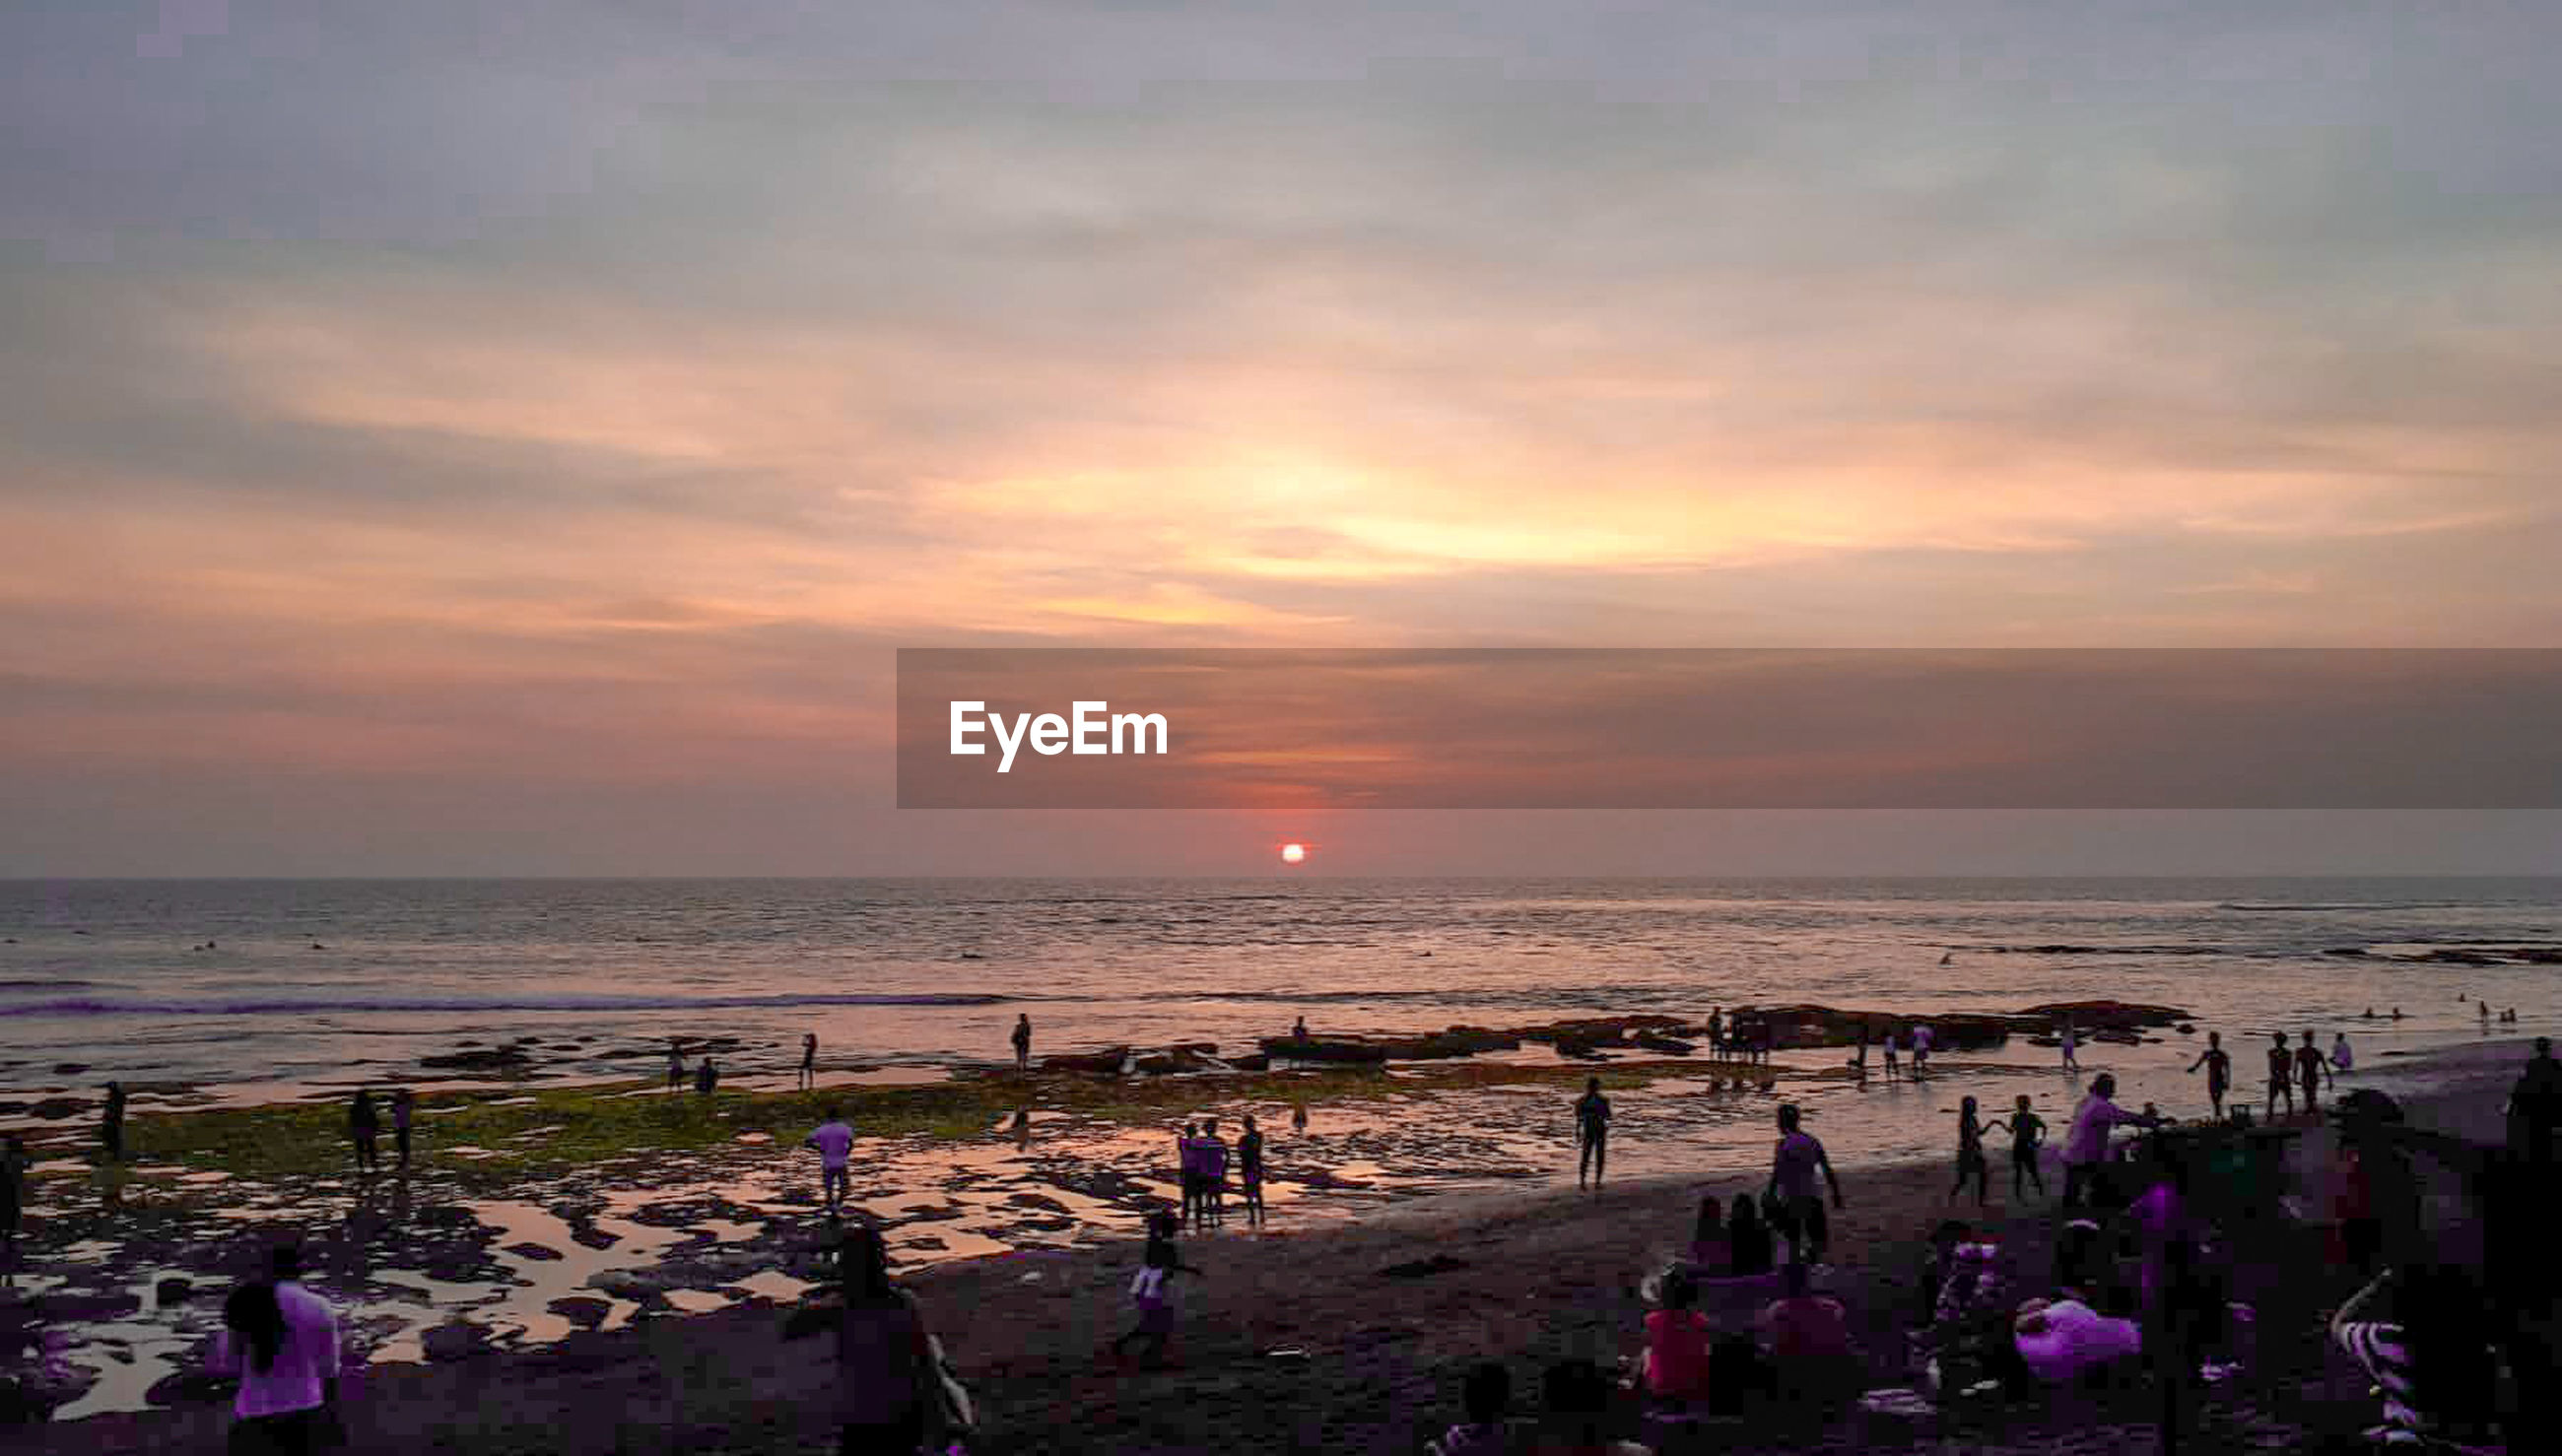 sky, water, sea, sunset, beach, cloud - sky, beauty in nature, horizon, horizon over water, land, scenics - nature, group of people, large group of people, nature, crowd, tranquility, tranquil scene, vacations, real people, outdoors